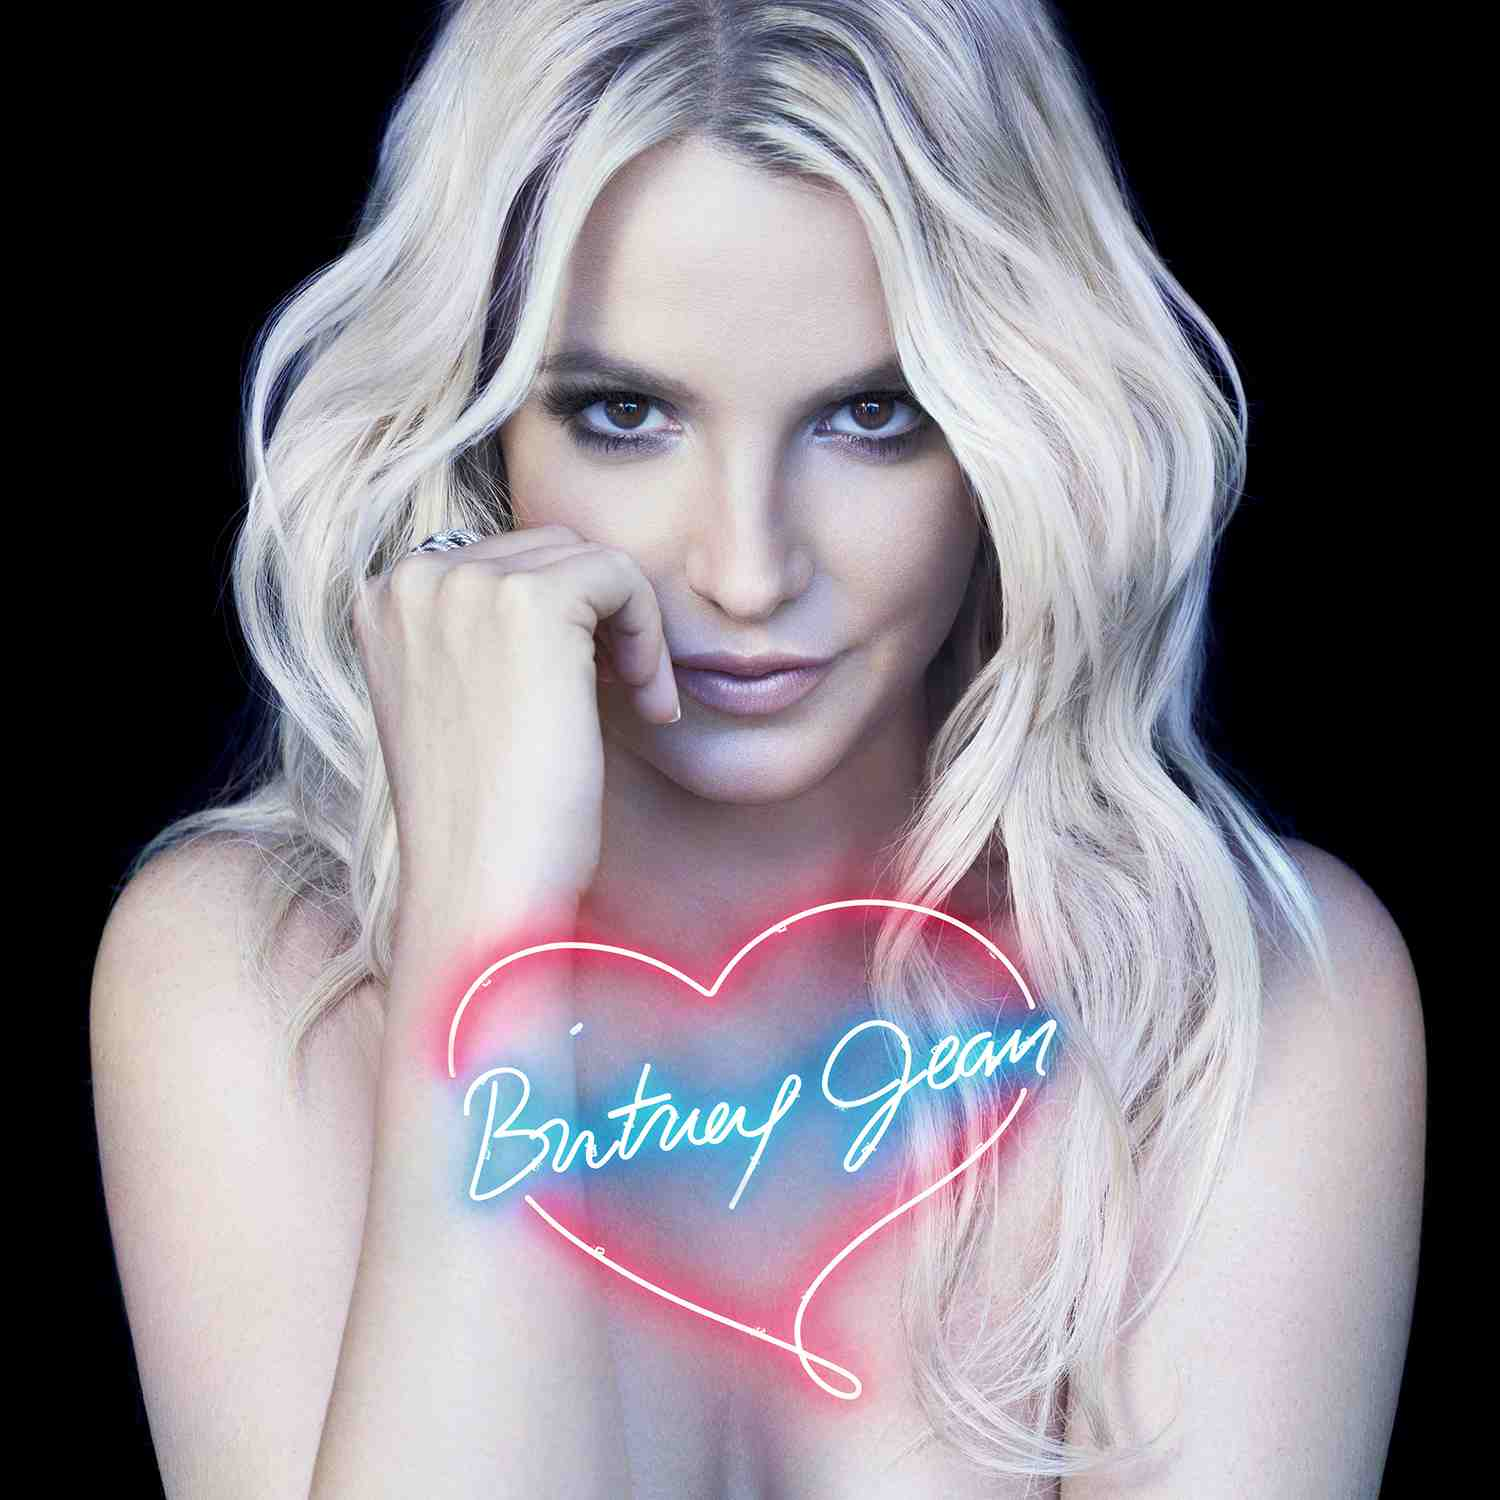 britney spears britney jean standard cover small3.jpg